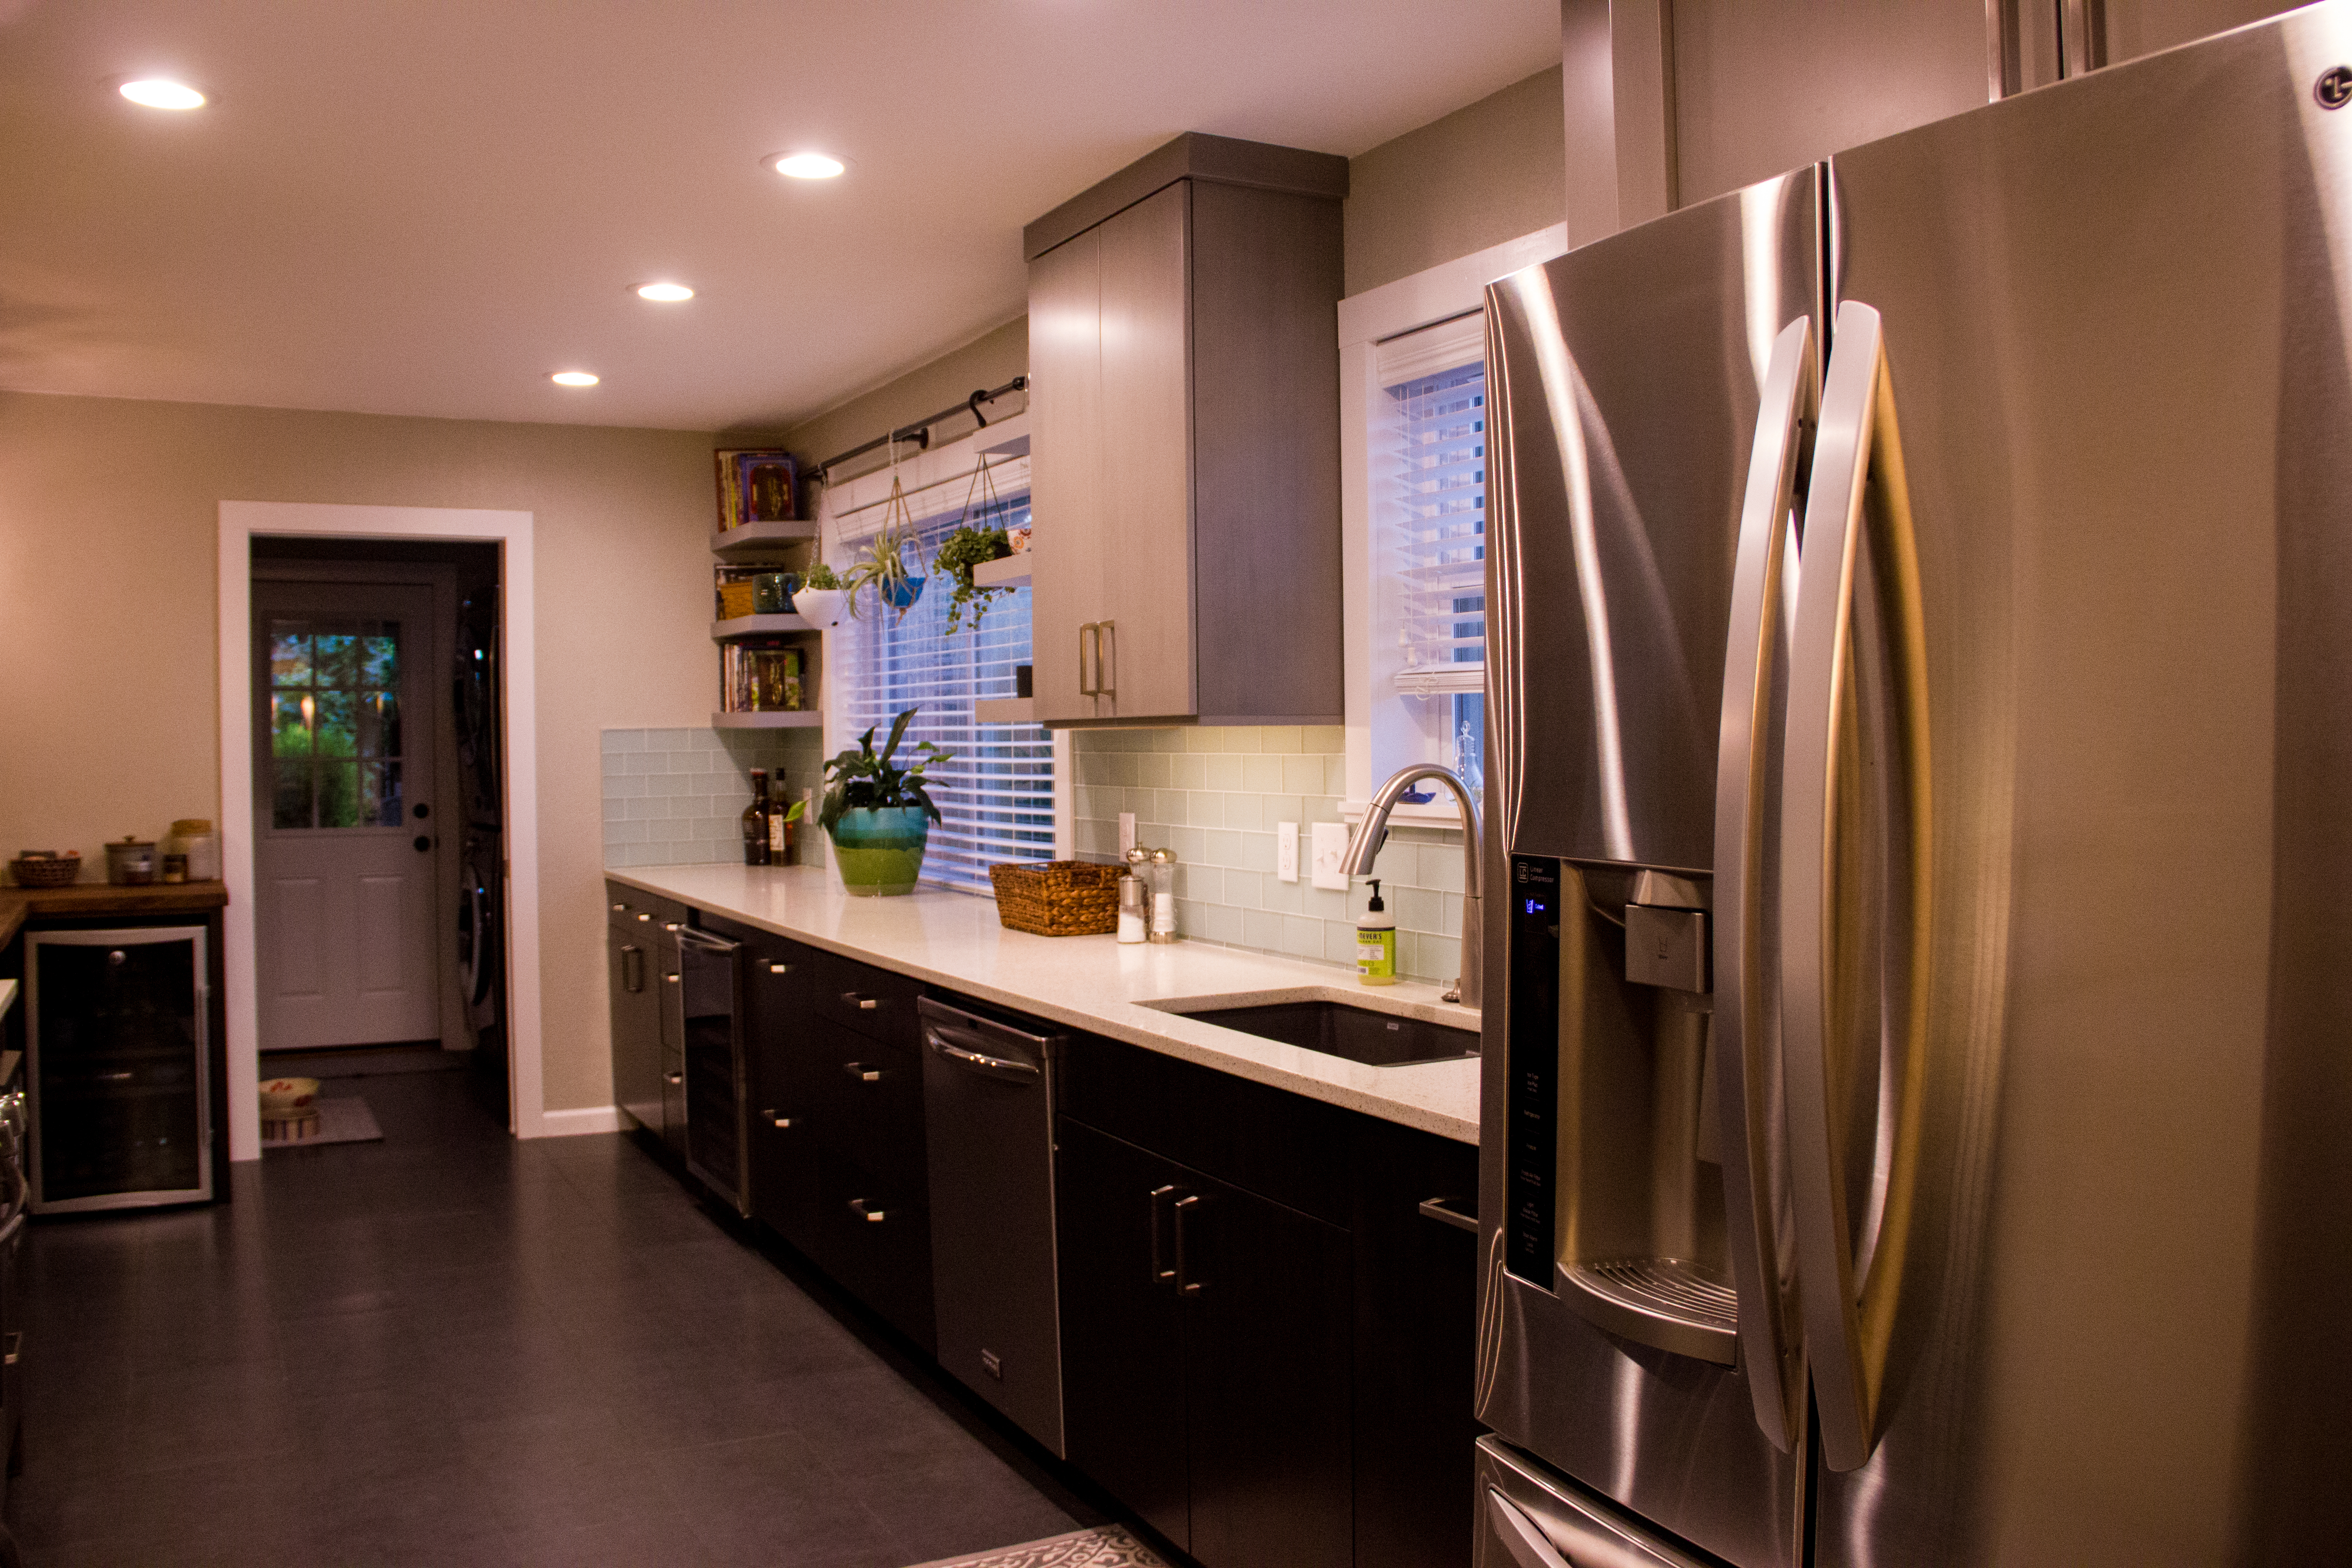 the cabinets above the fridge and the panel on its left side make the fridge look built in and the cabinets have special vertical dividers for baking pan